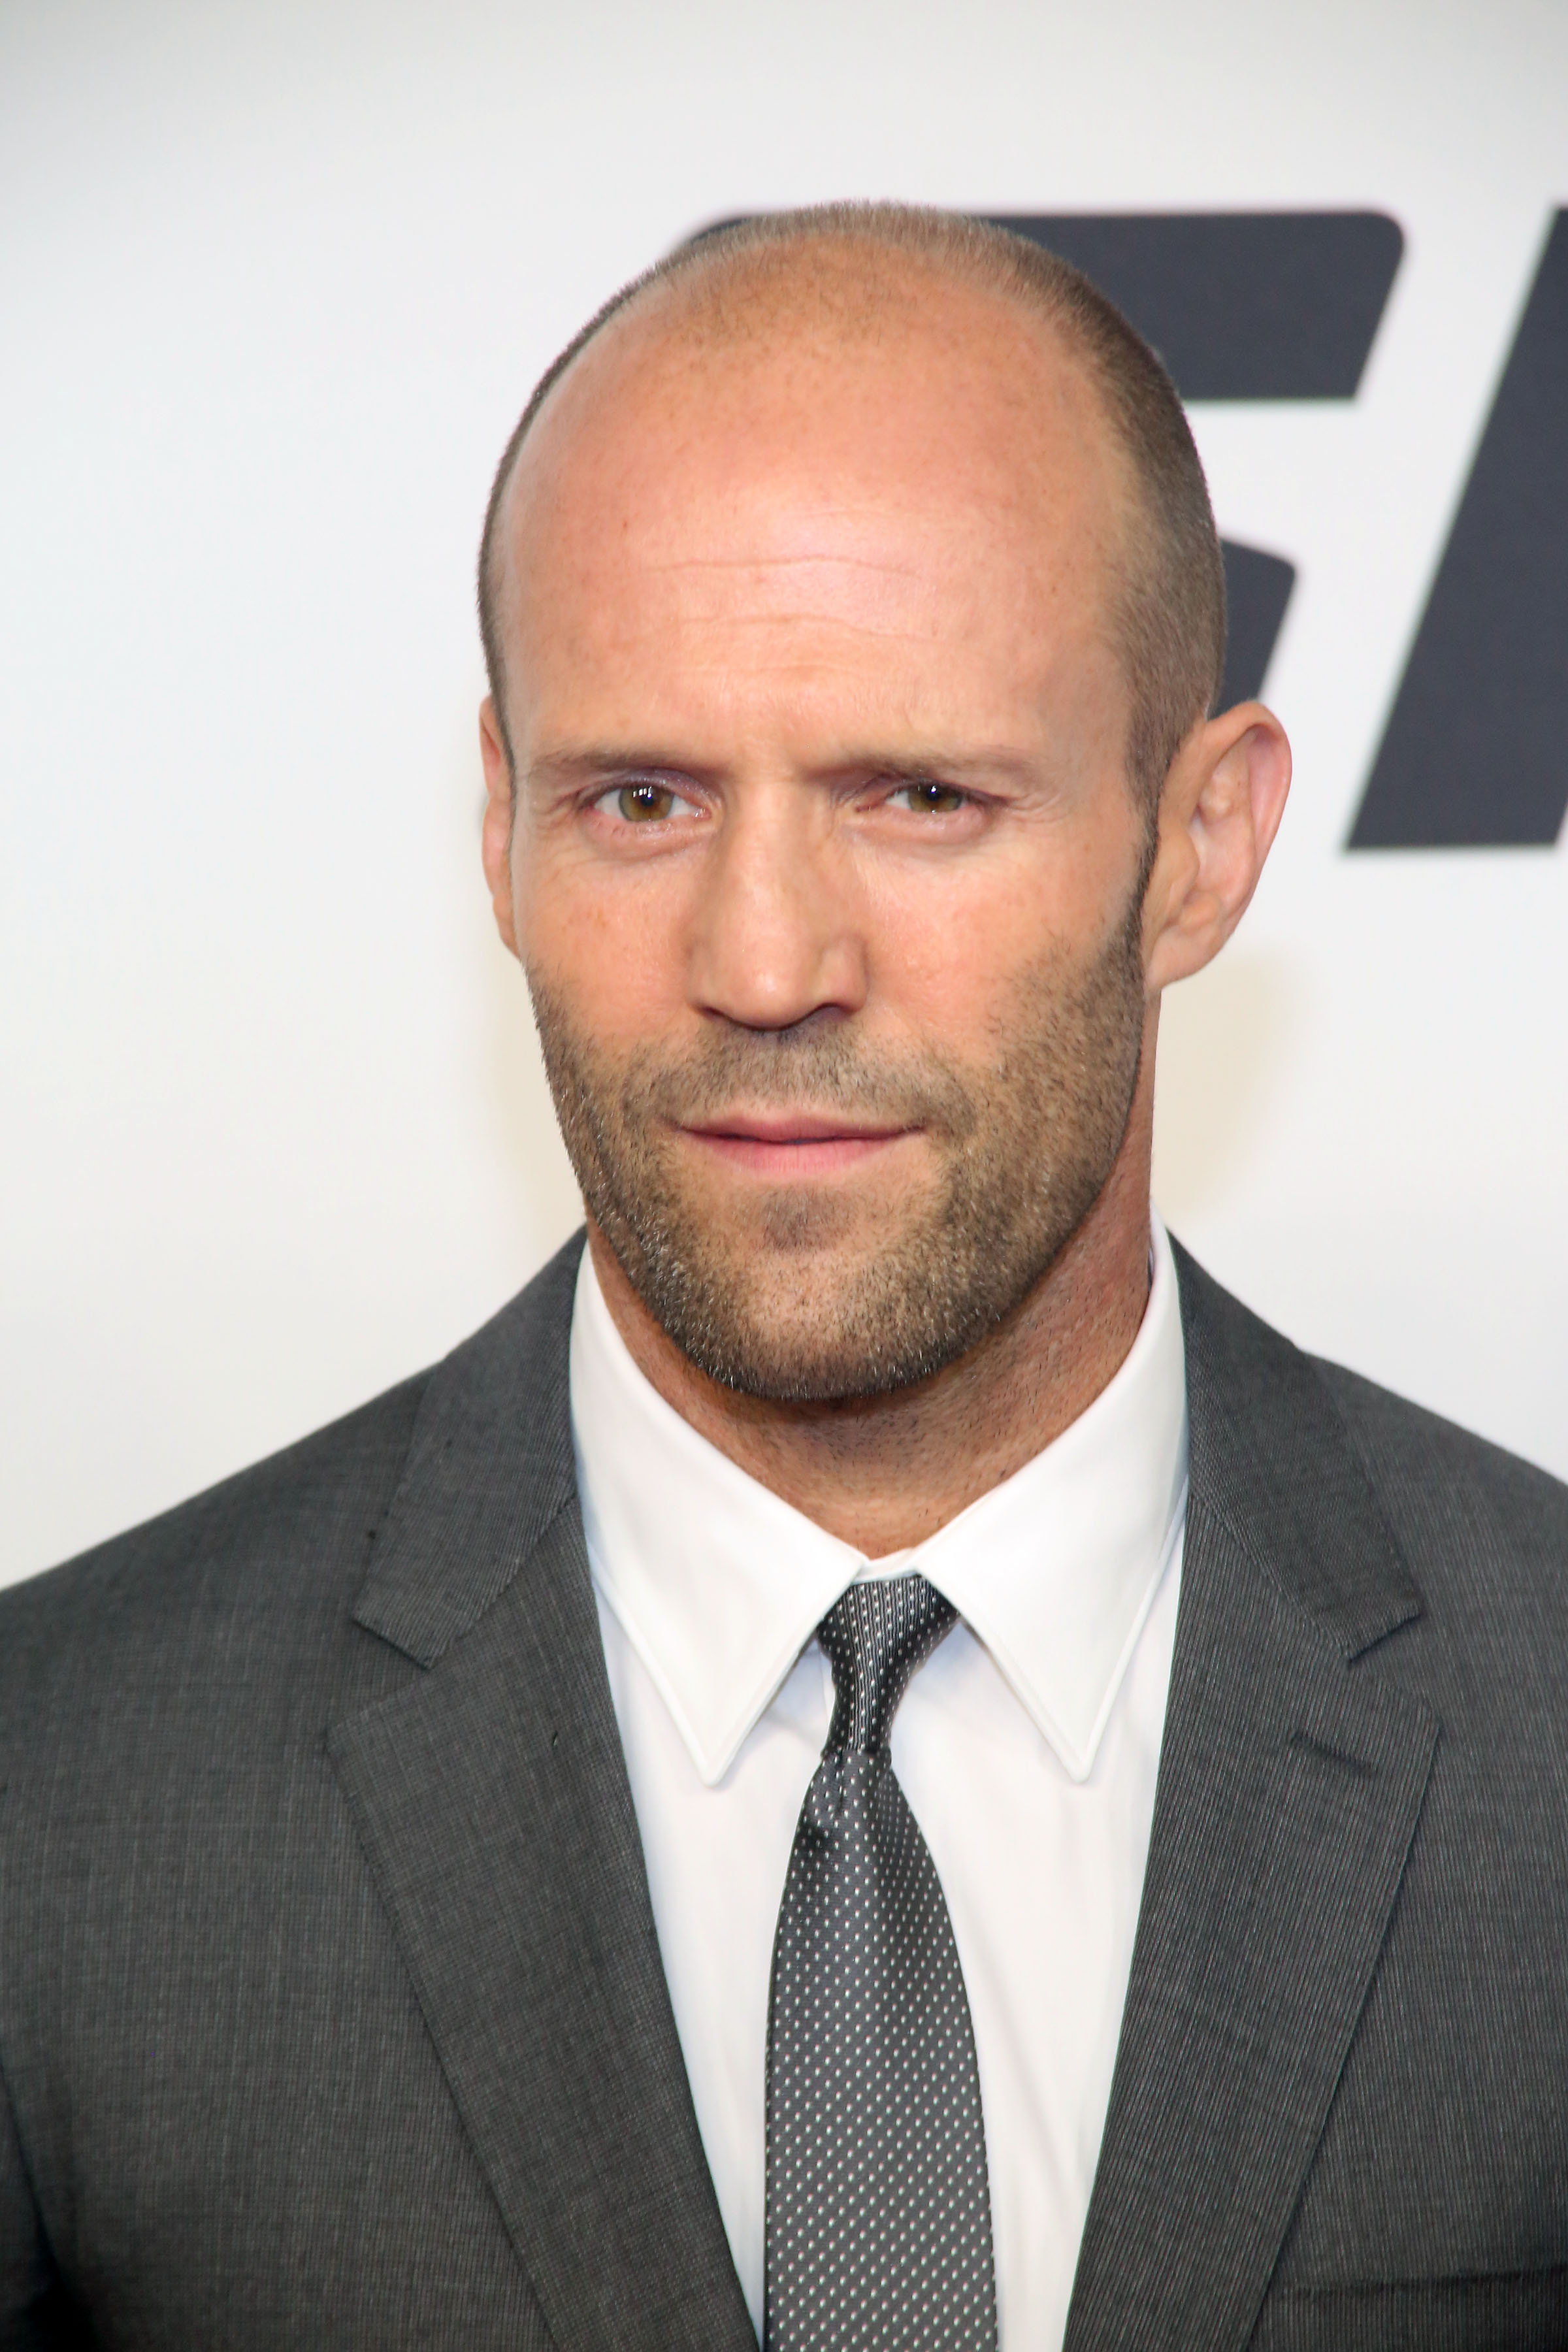 Jason Statham at the New York Premiere of  Spy  in New York City on June 1, 2015.